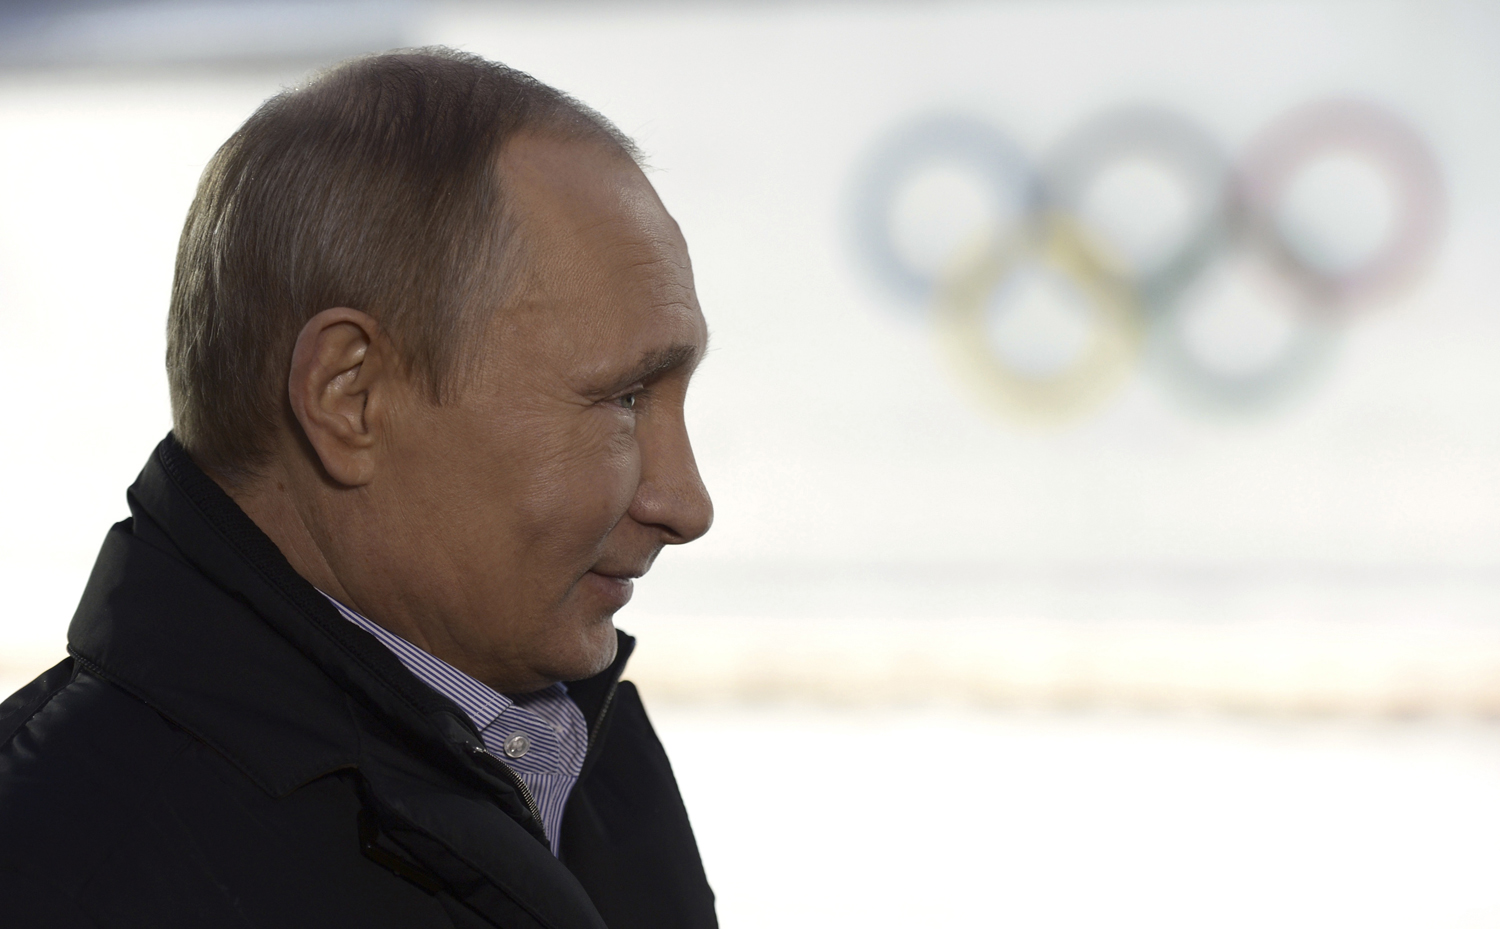 Russian President Vladimir Putin listens to a journalist's question during a televised news conference in Sochi January 19, 2014.